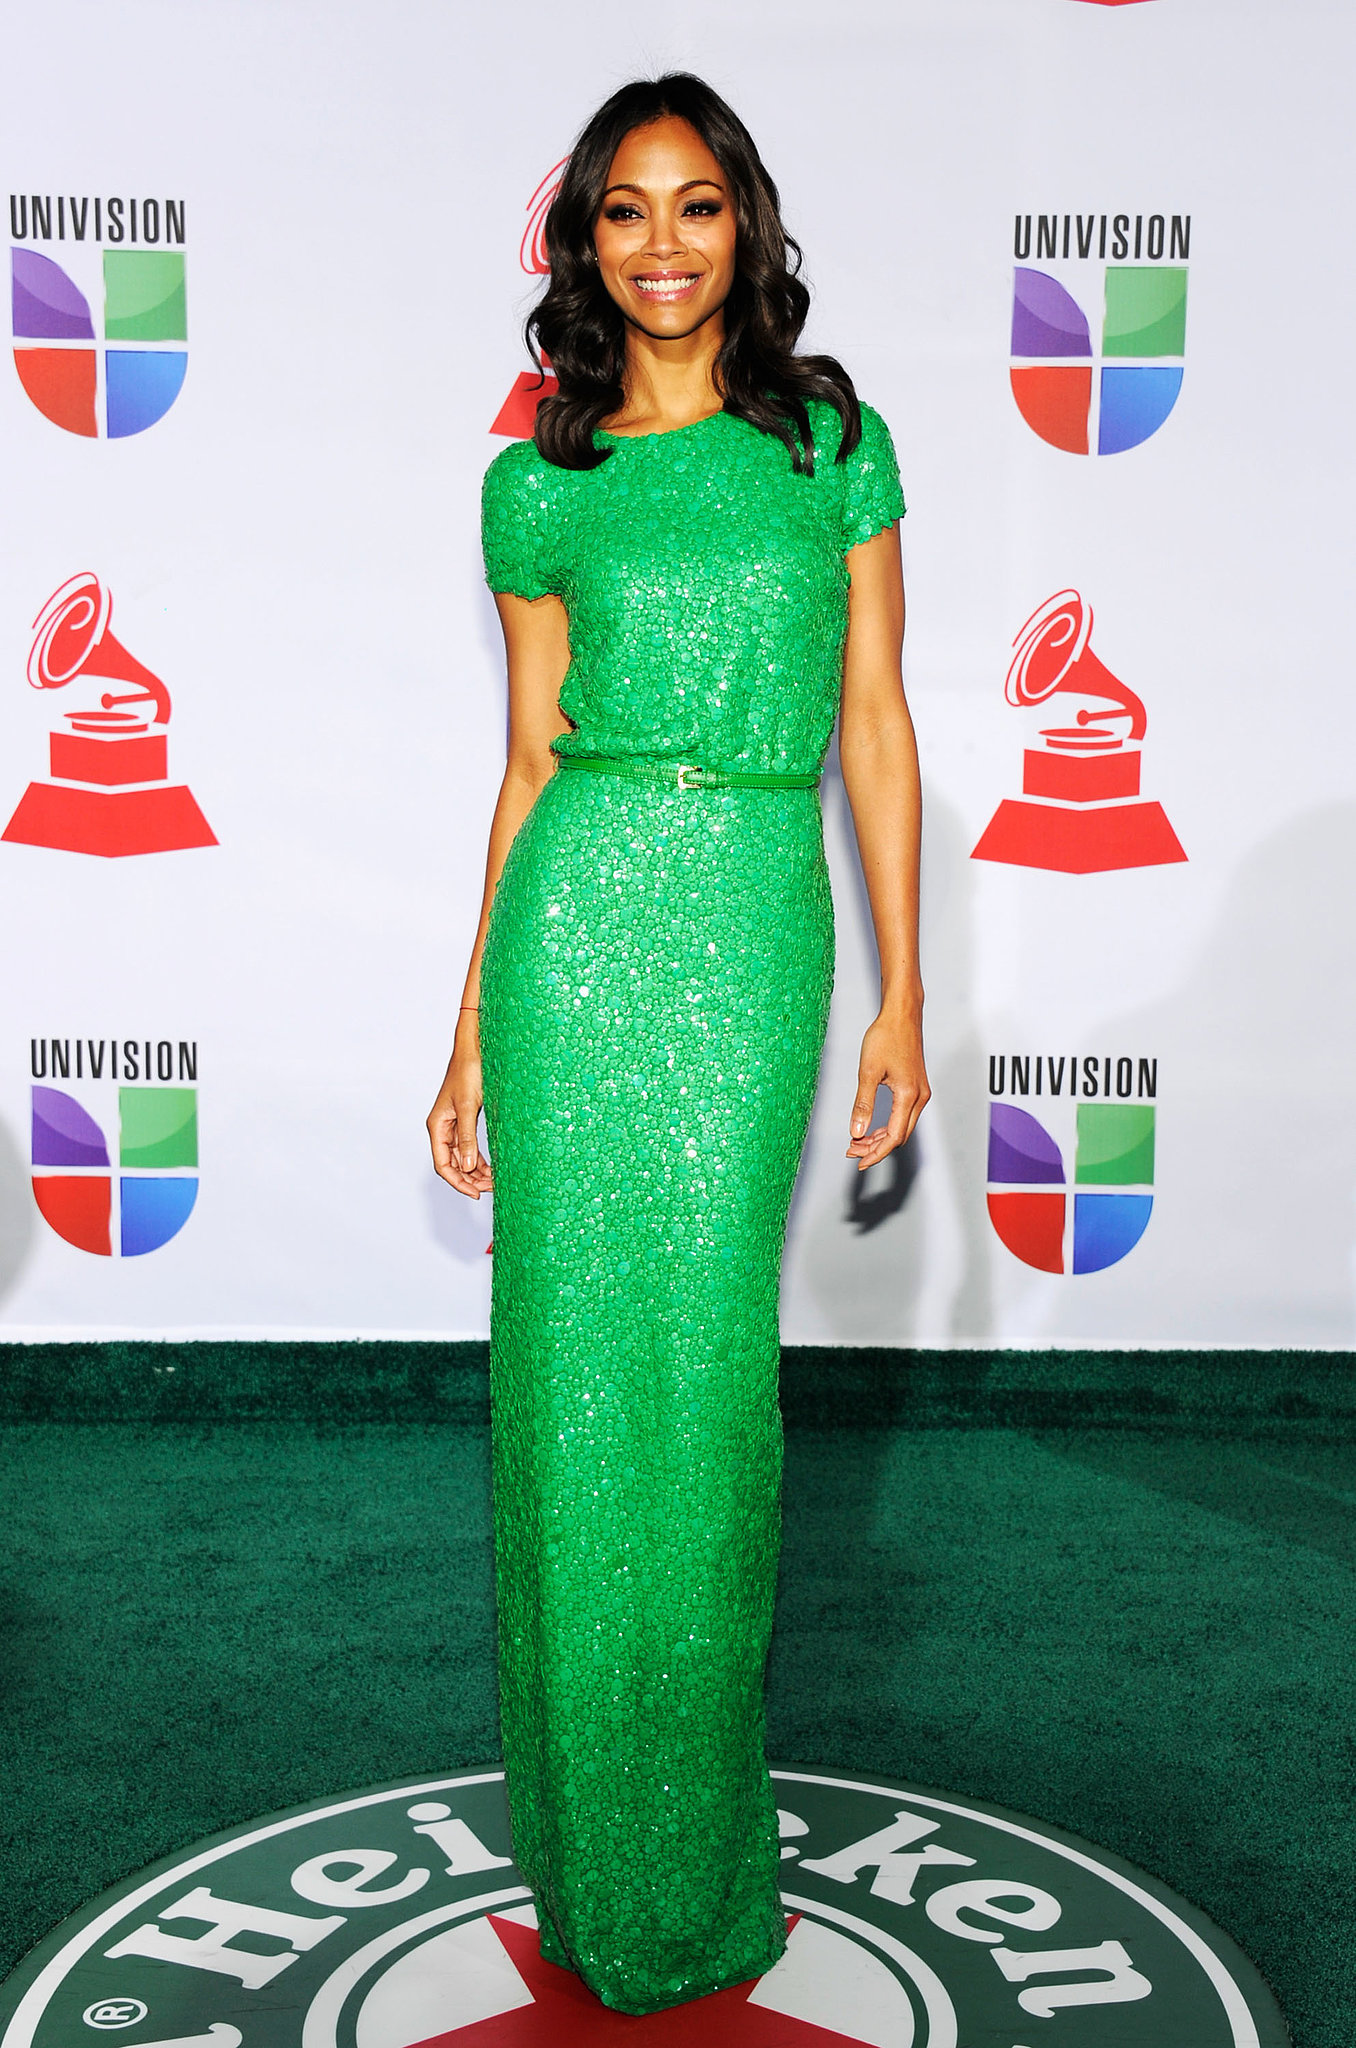 We couldn't think of anyone better to wear this sequined kelly-green Elie Saab gown than Zoe — her 2011 Latin Grammy Awards gown made us green with envy.